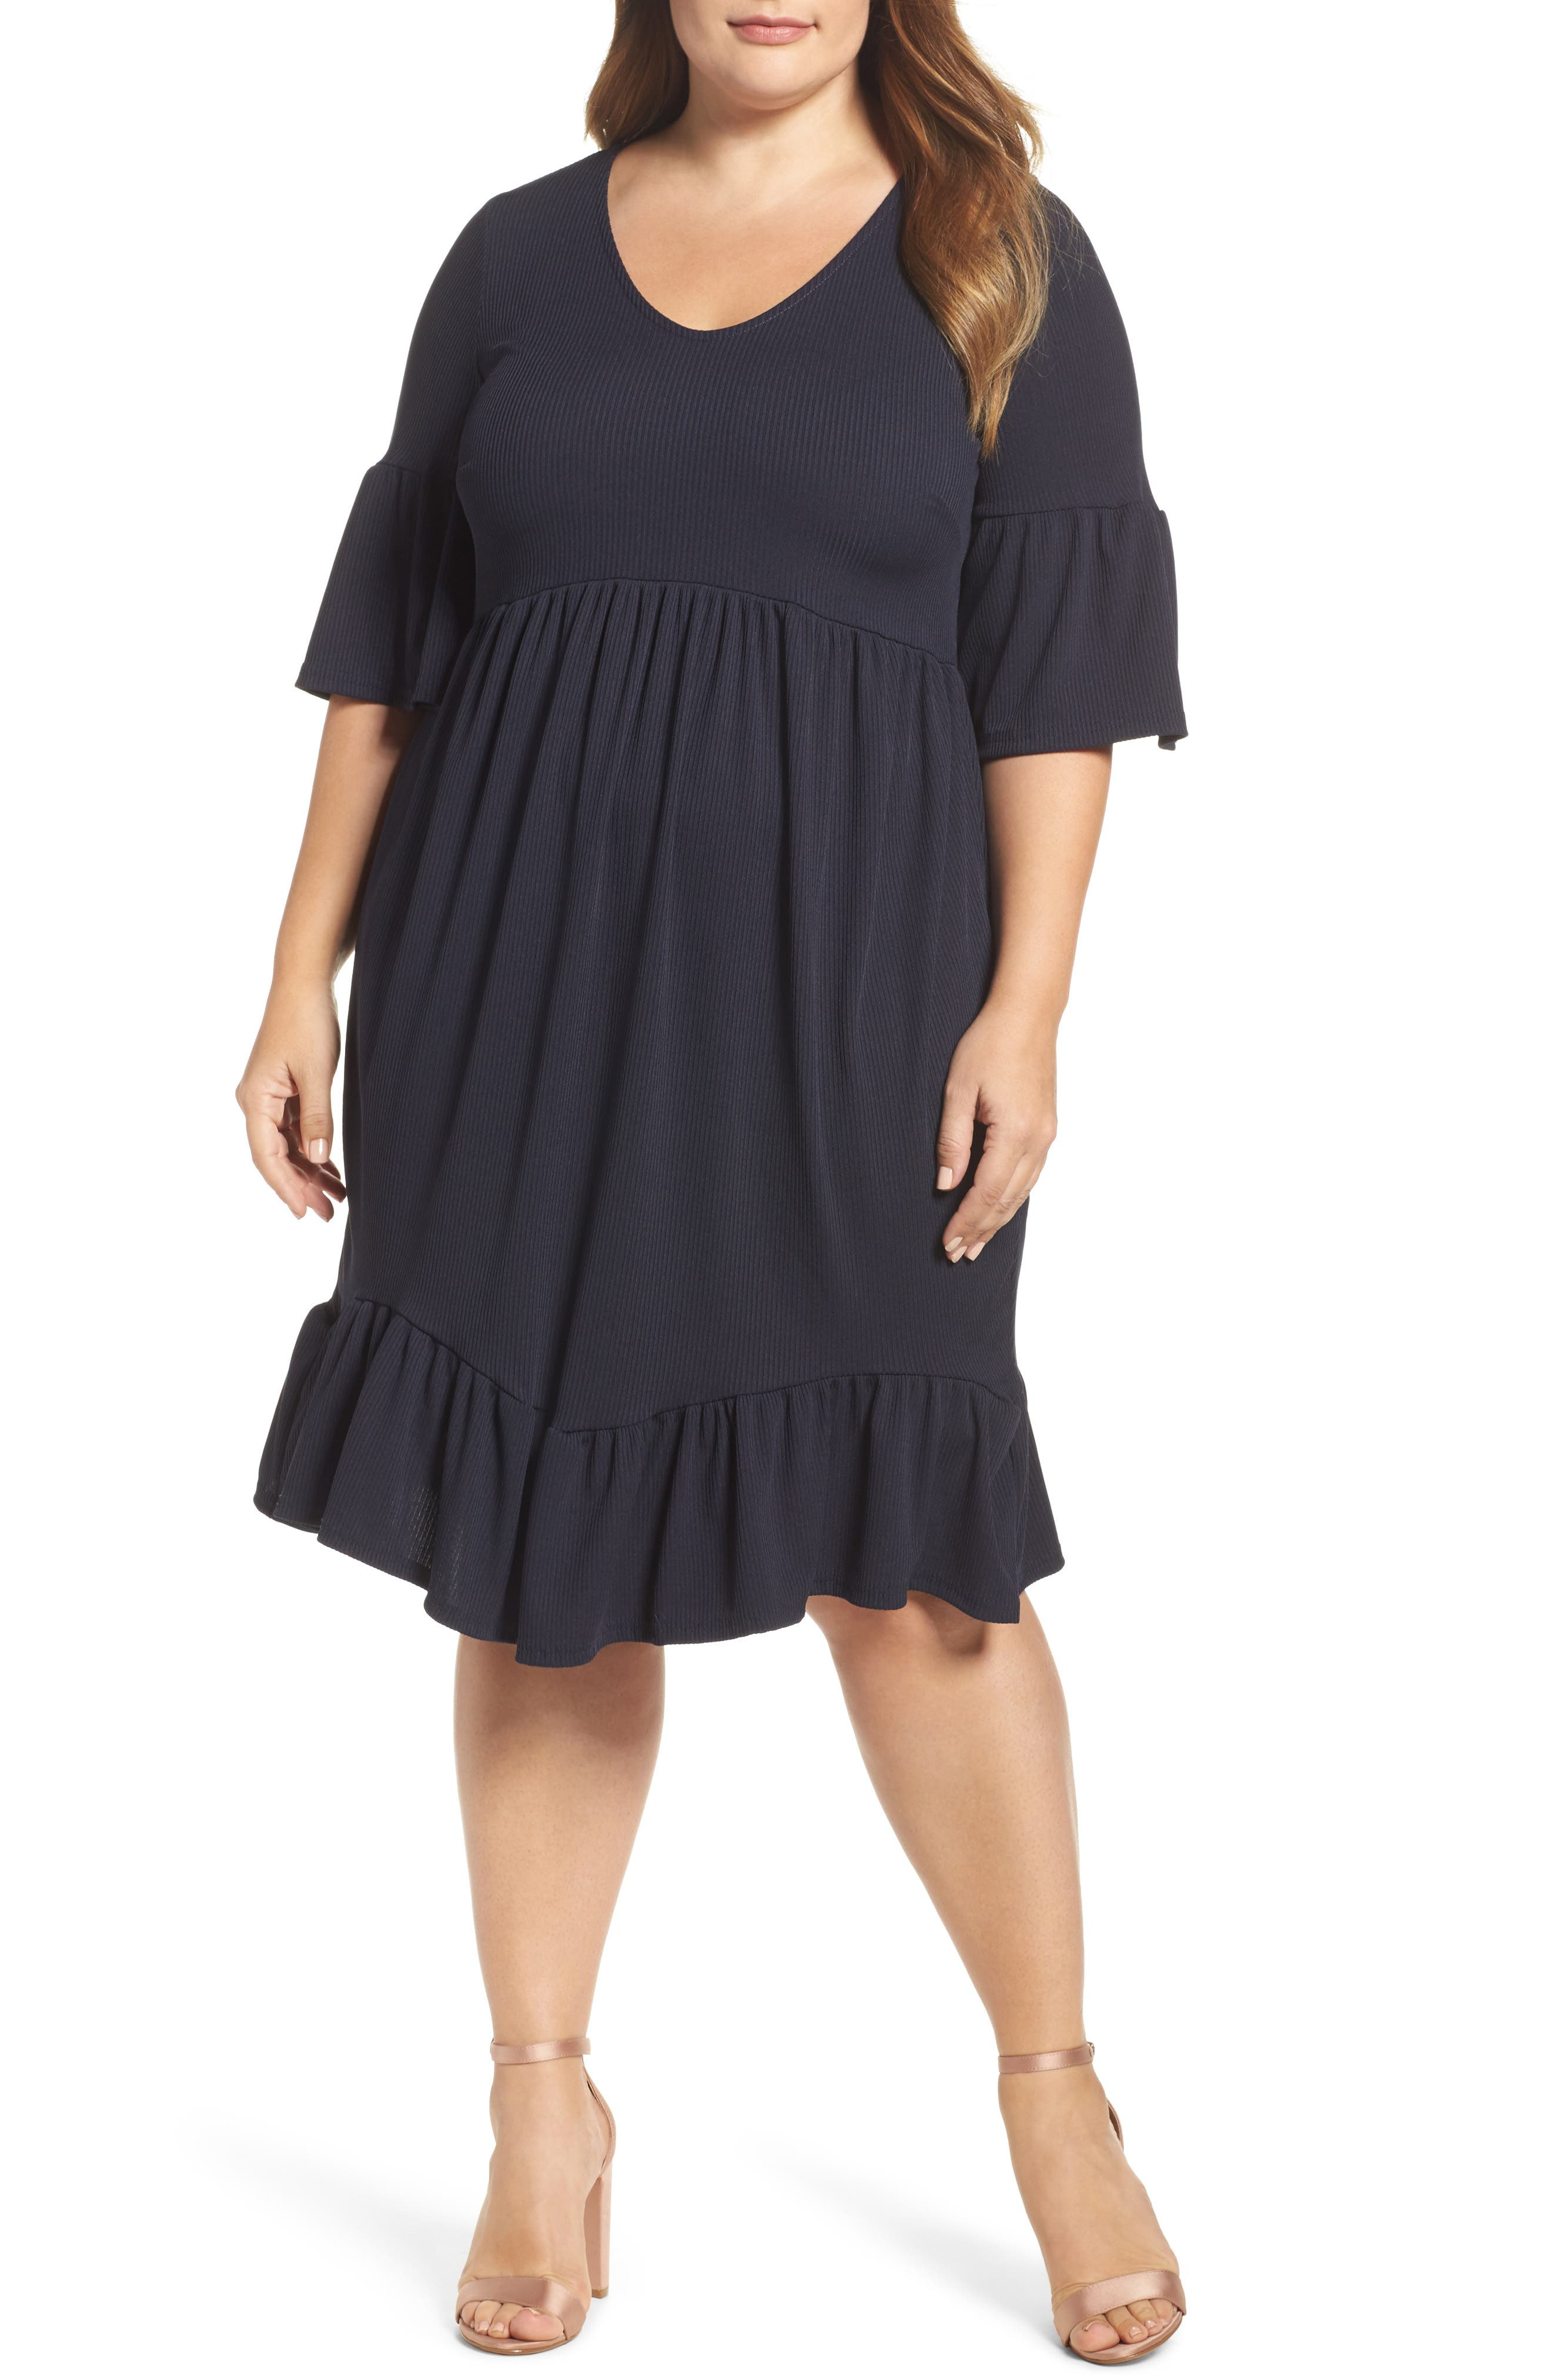 Alternate Image 1 Selected - LOST INK Ruffle Ribbed Knit Dress (Plus Size)